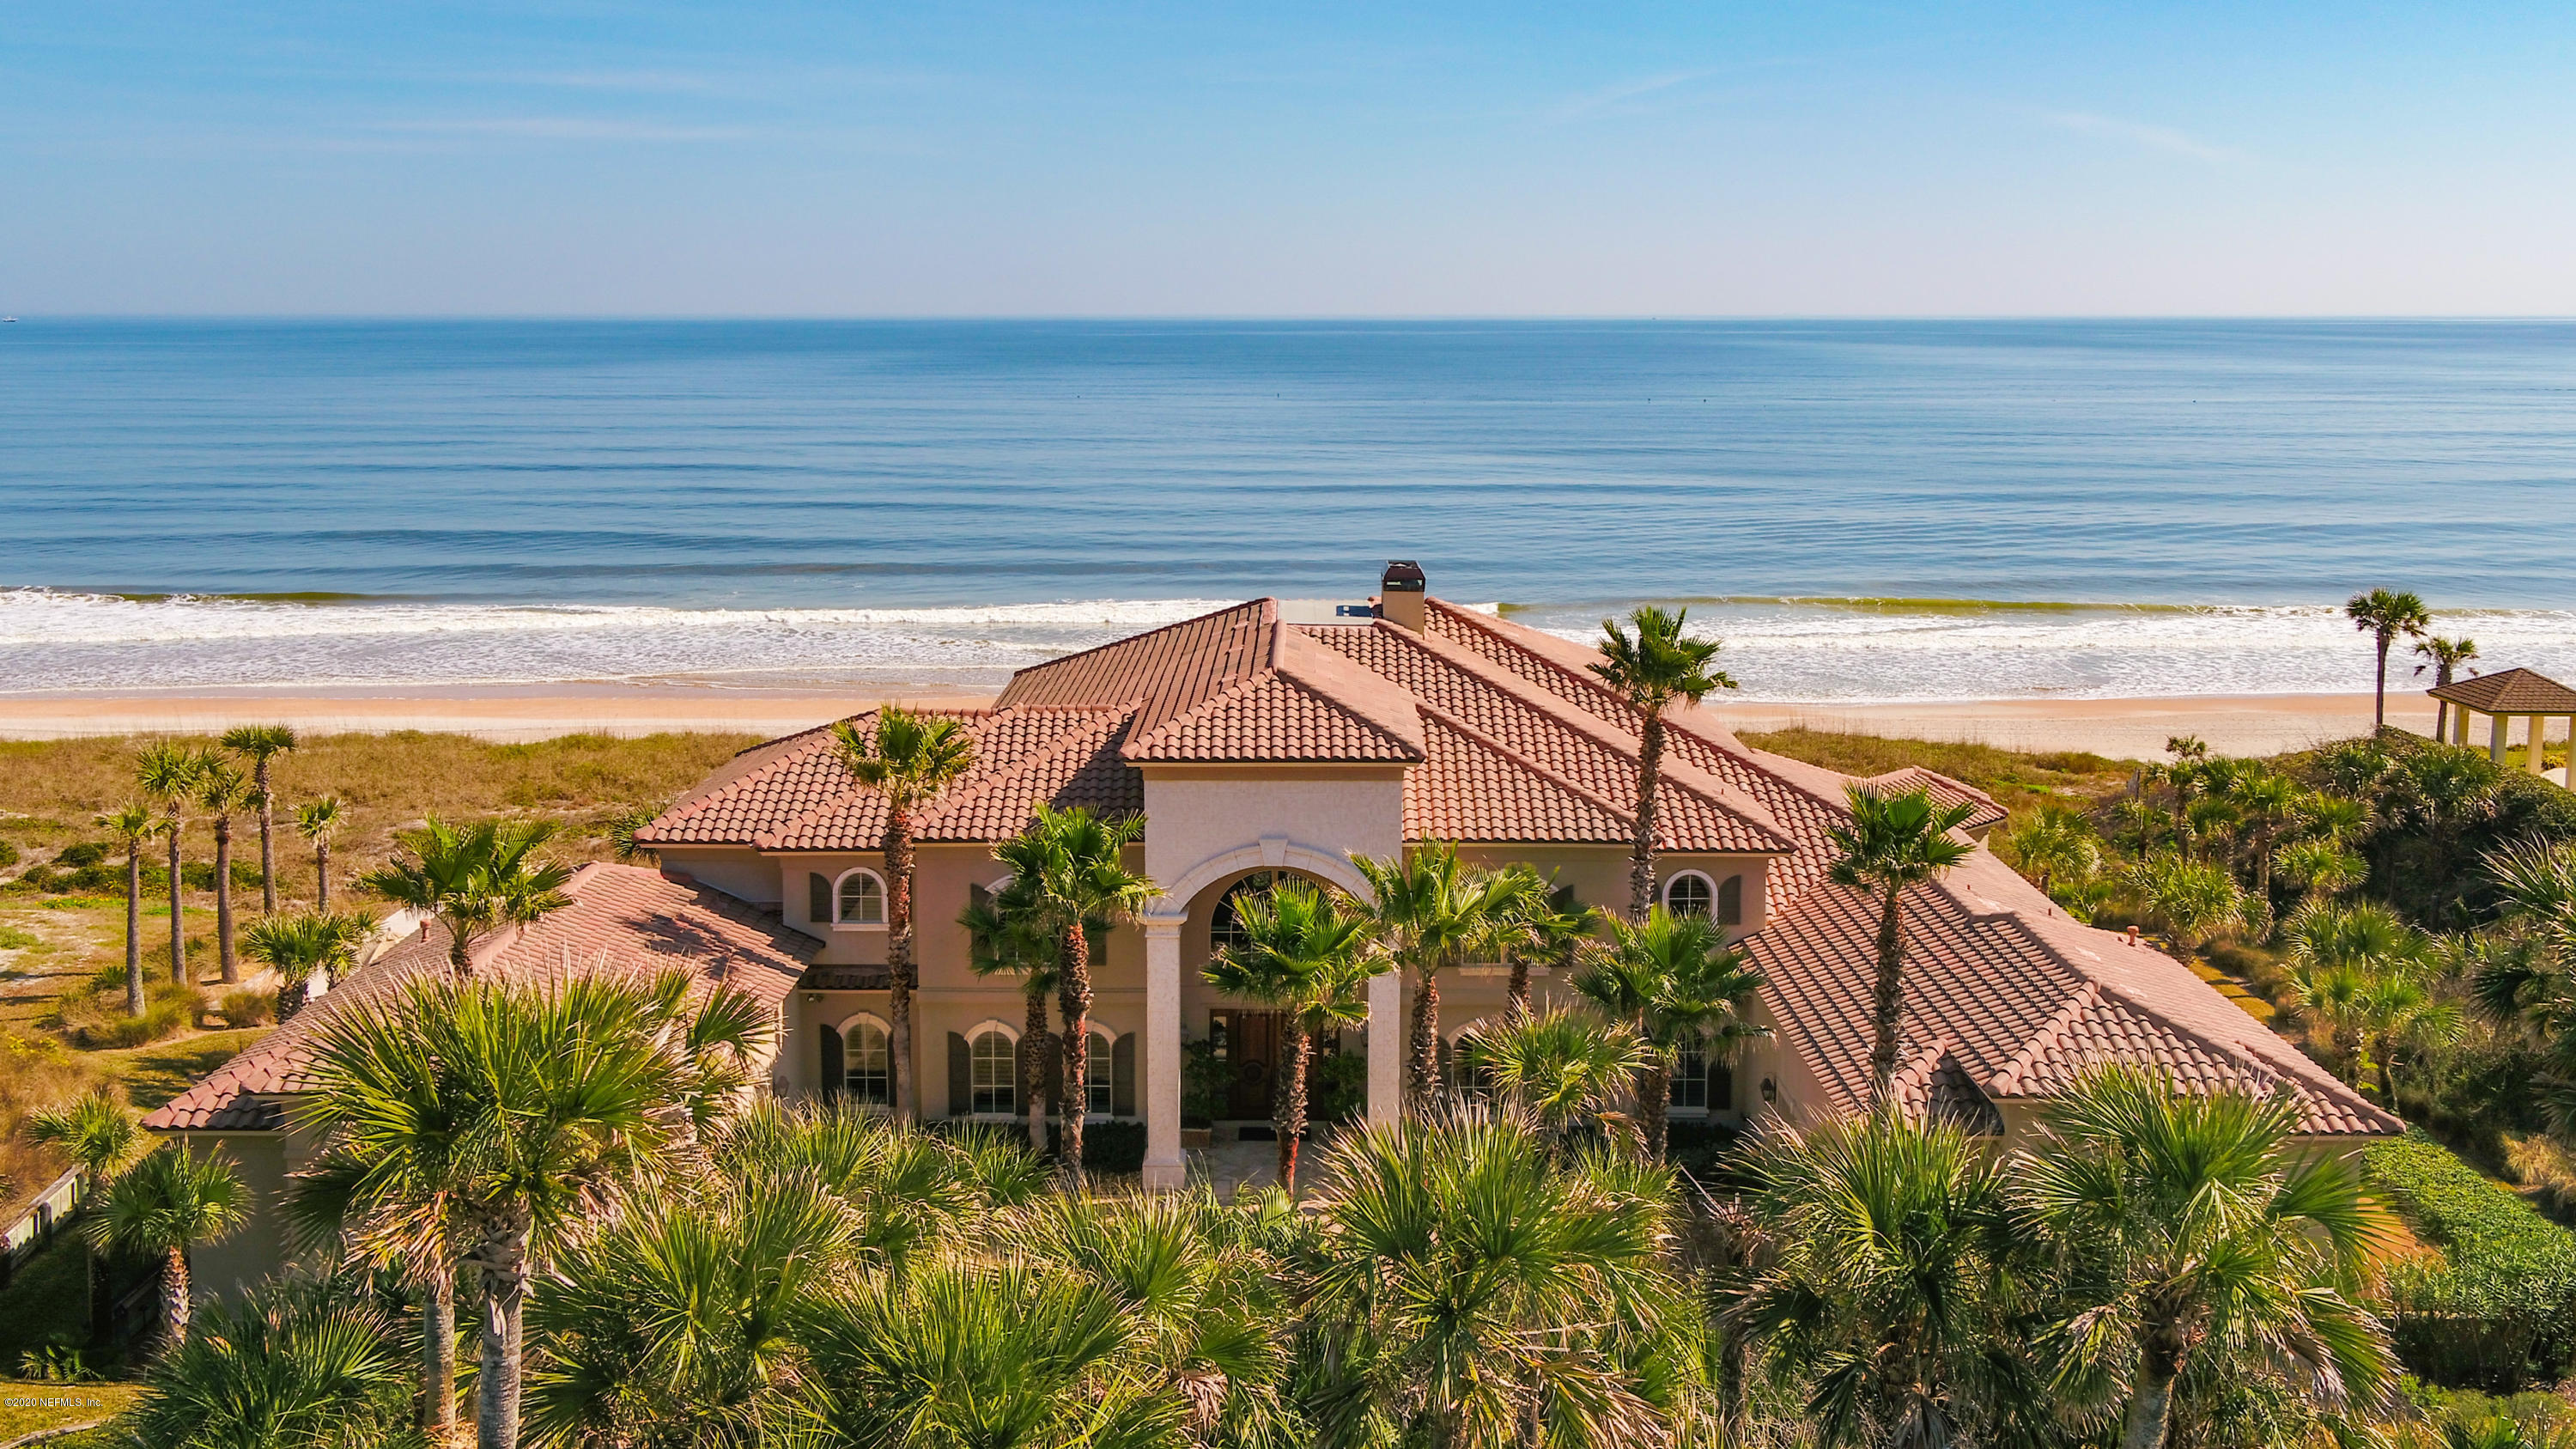 1159 PONTE VEDRA, PONTE VEDRA BEACH, FLORIDA 32082, 5 Bedrooms Bedrooms, ,6 BathroomsBathrooms,Residential,For sale,PONTE VEDRA,1060262